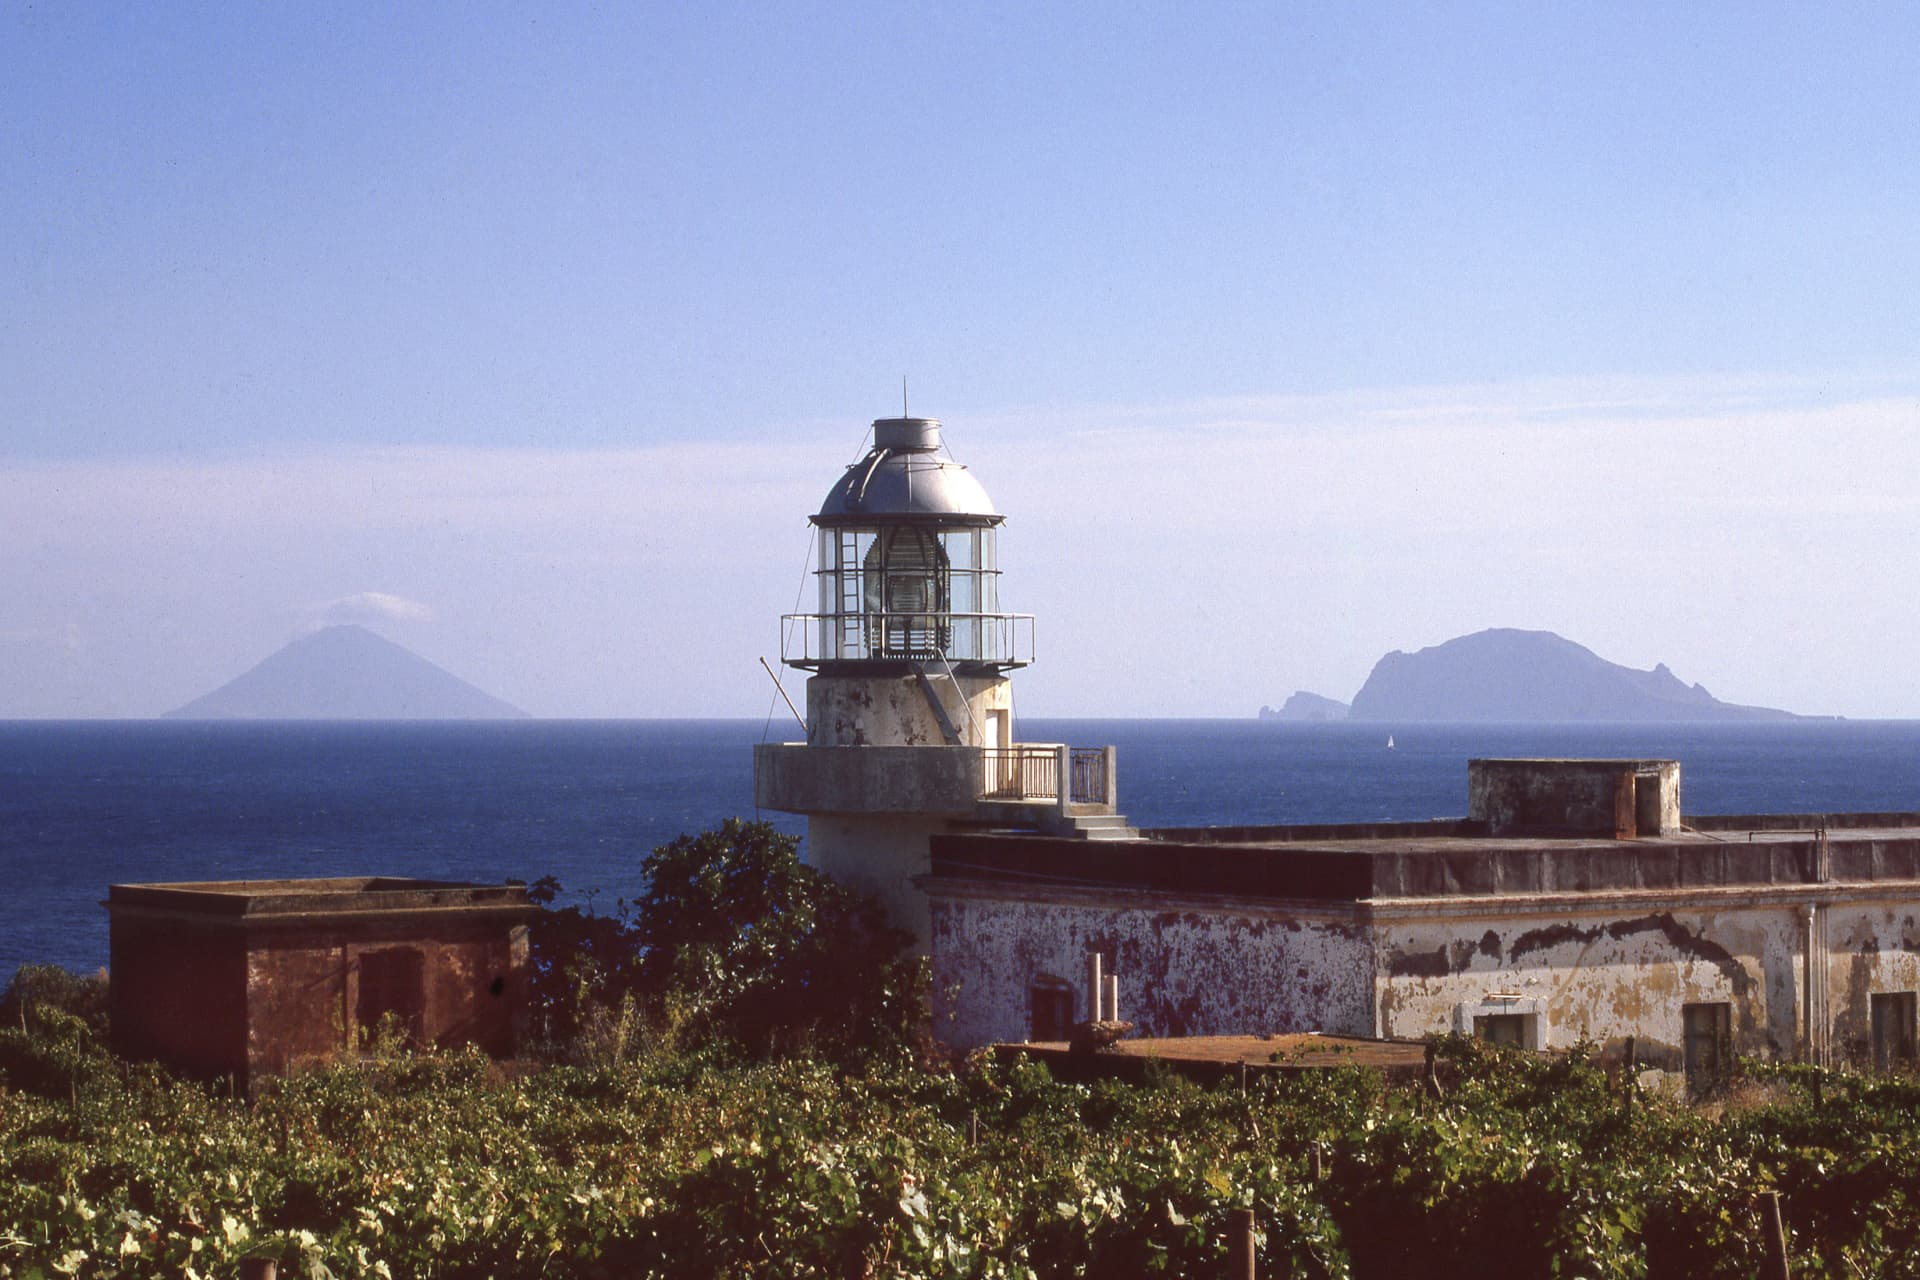 Beyond the vineyards of Malvasia and the ancient lighthouse, the shapes of Panarea and Stromboli appear on the horizon, in the splendid panoramic postcard that the Hotel Capofaro offers.